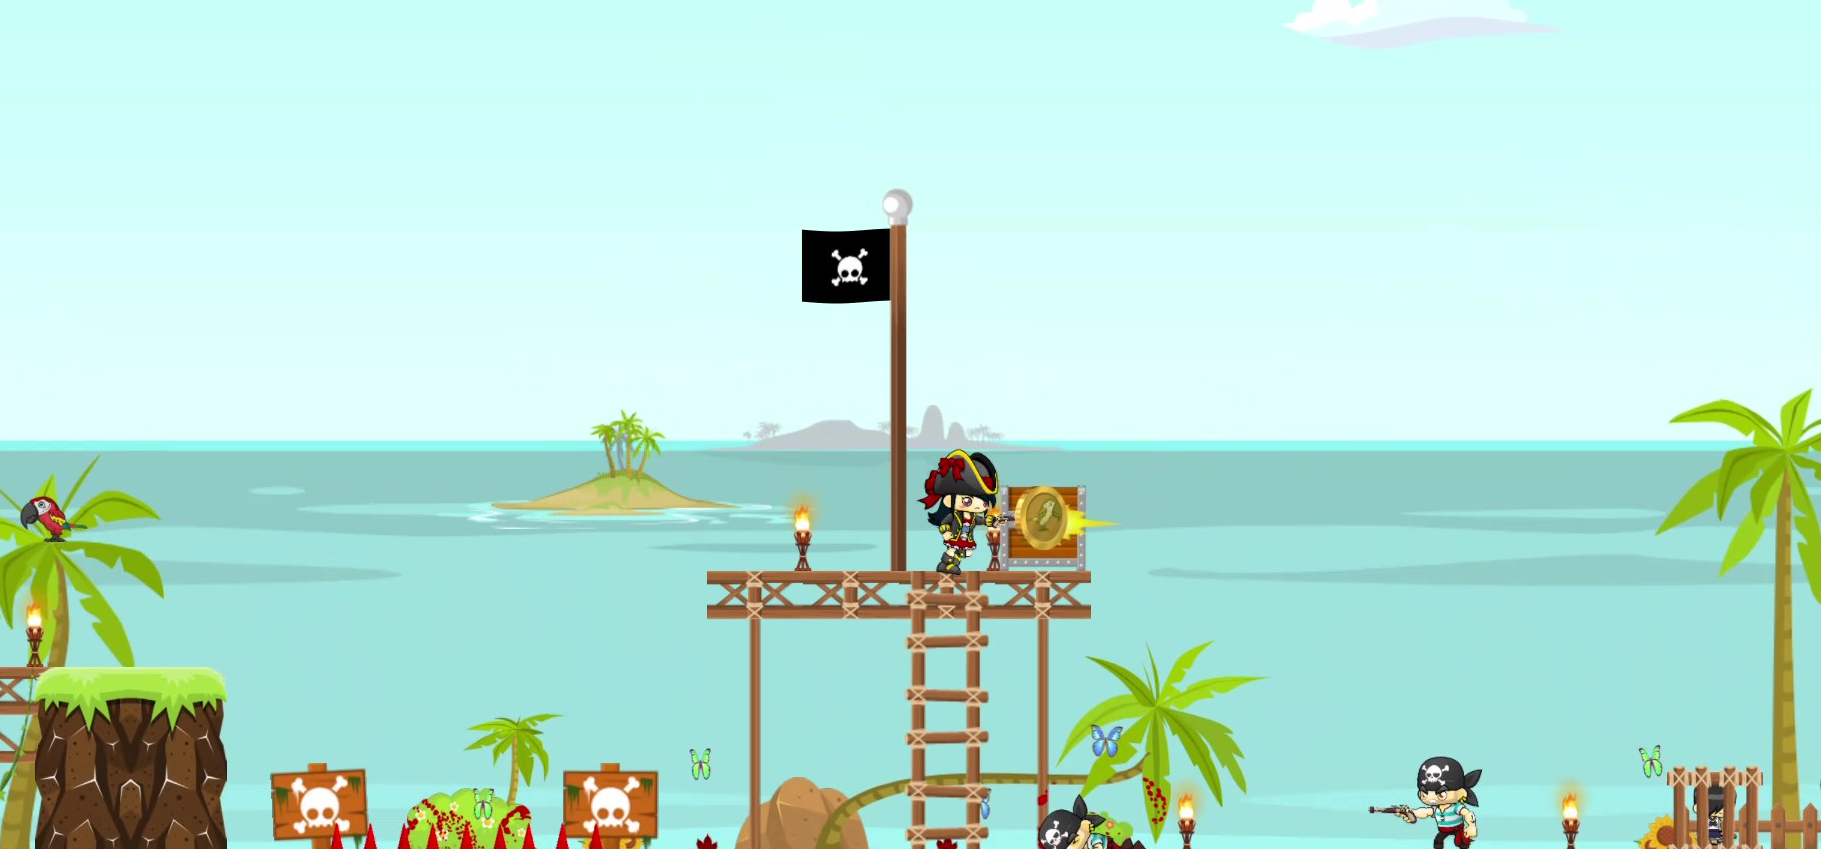 Pirate Island Rescue launches on Steam today